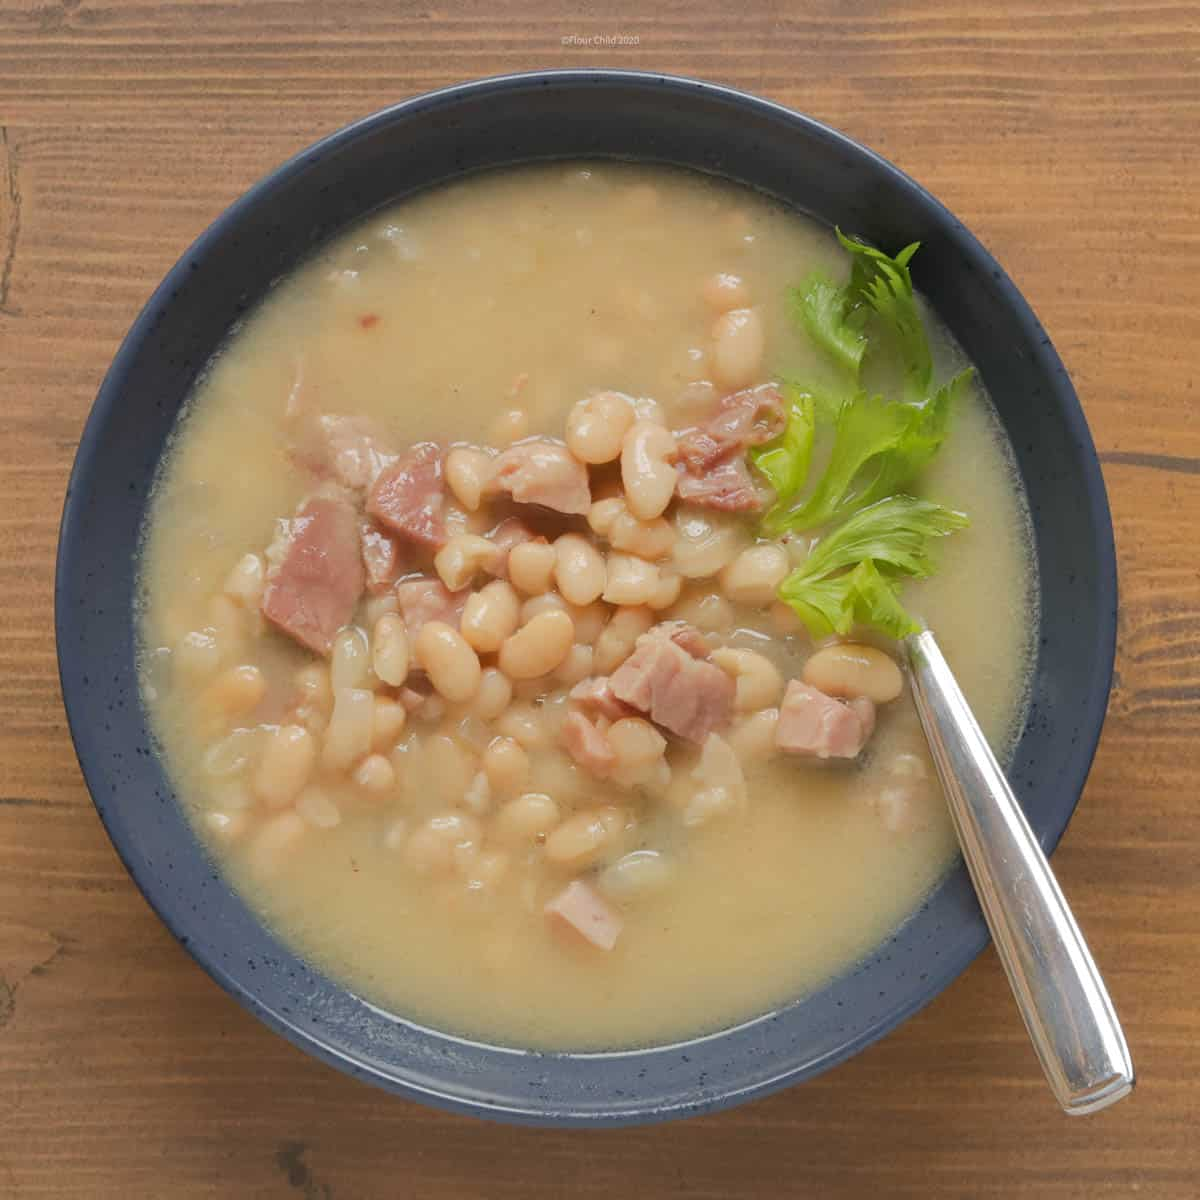 Traditional Navy Bean Soup in a blue bowl with spoon.